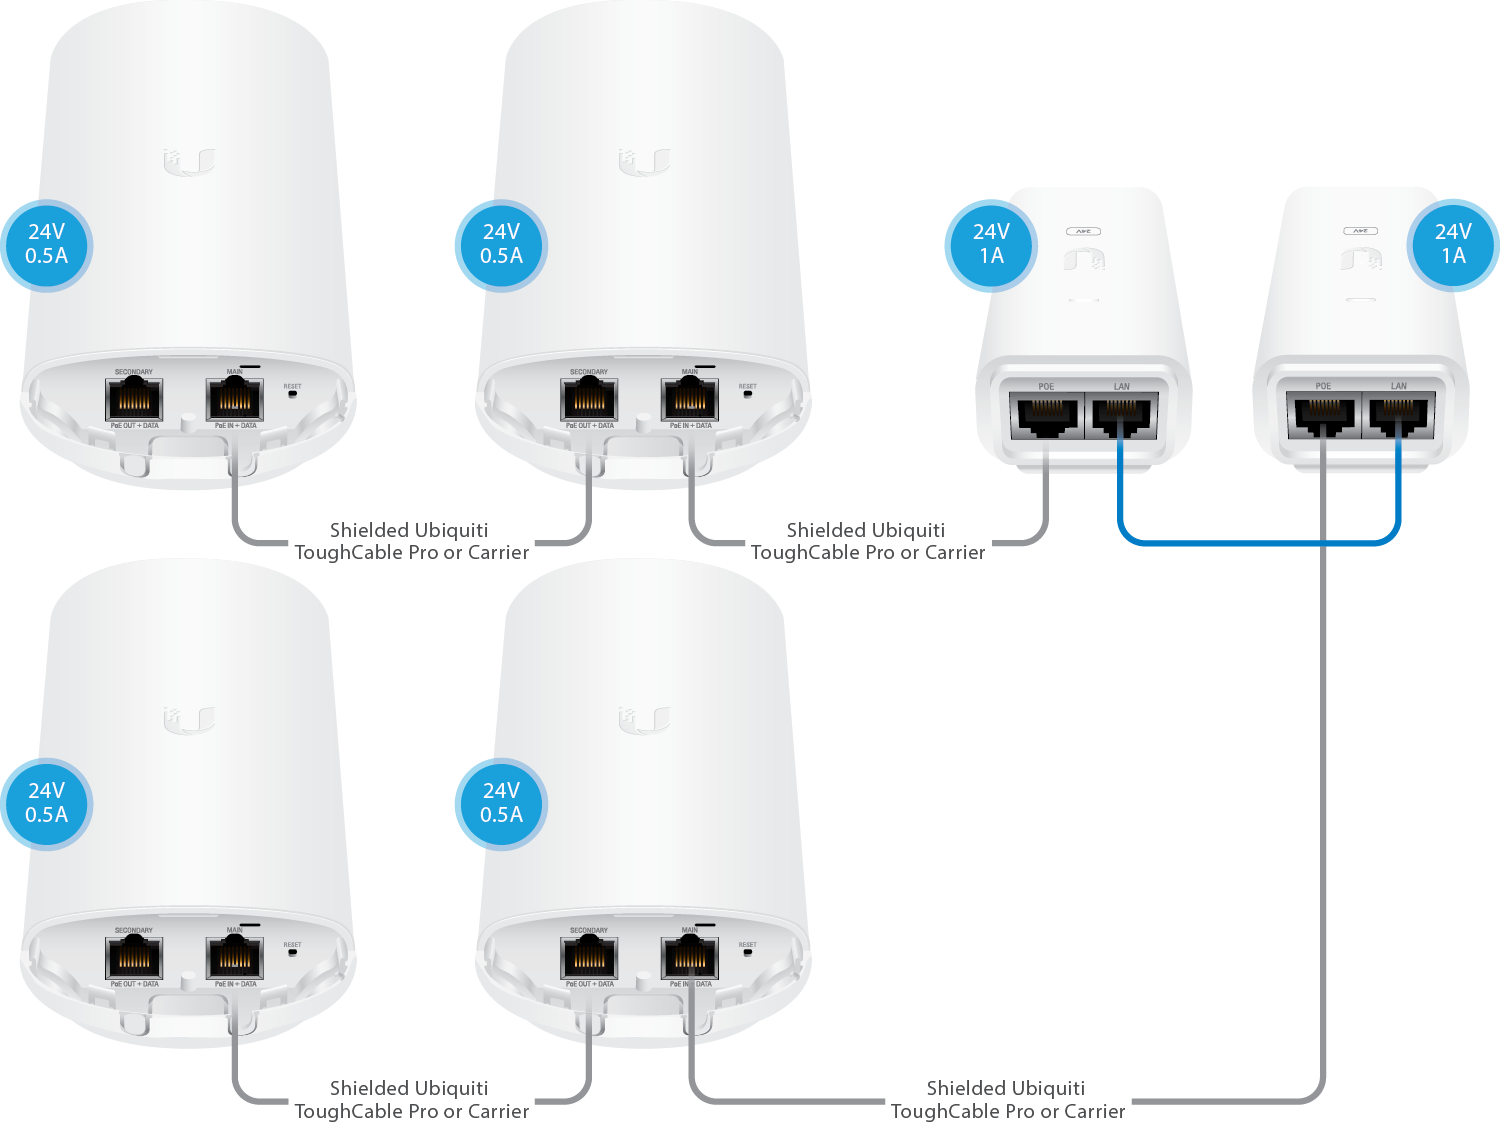 Airmax How To Configure A Poe Bridge Ubiquiti Networks Support Adaptor 24v 1a Note We Recommend Upgrading The Power Supply Model That Outputs 24watts Like 24 24w 100mbps Or G 1gbps When Powering